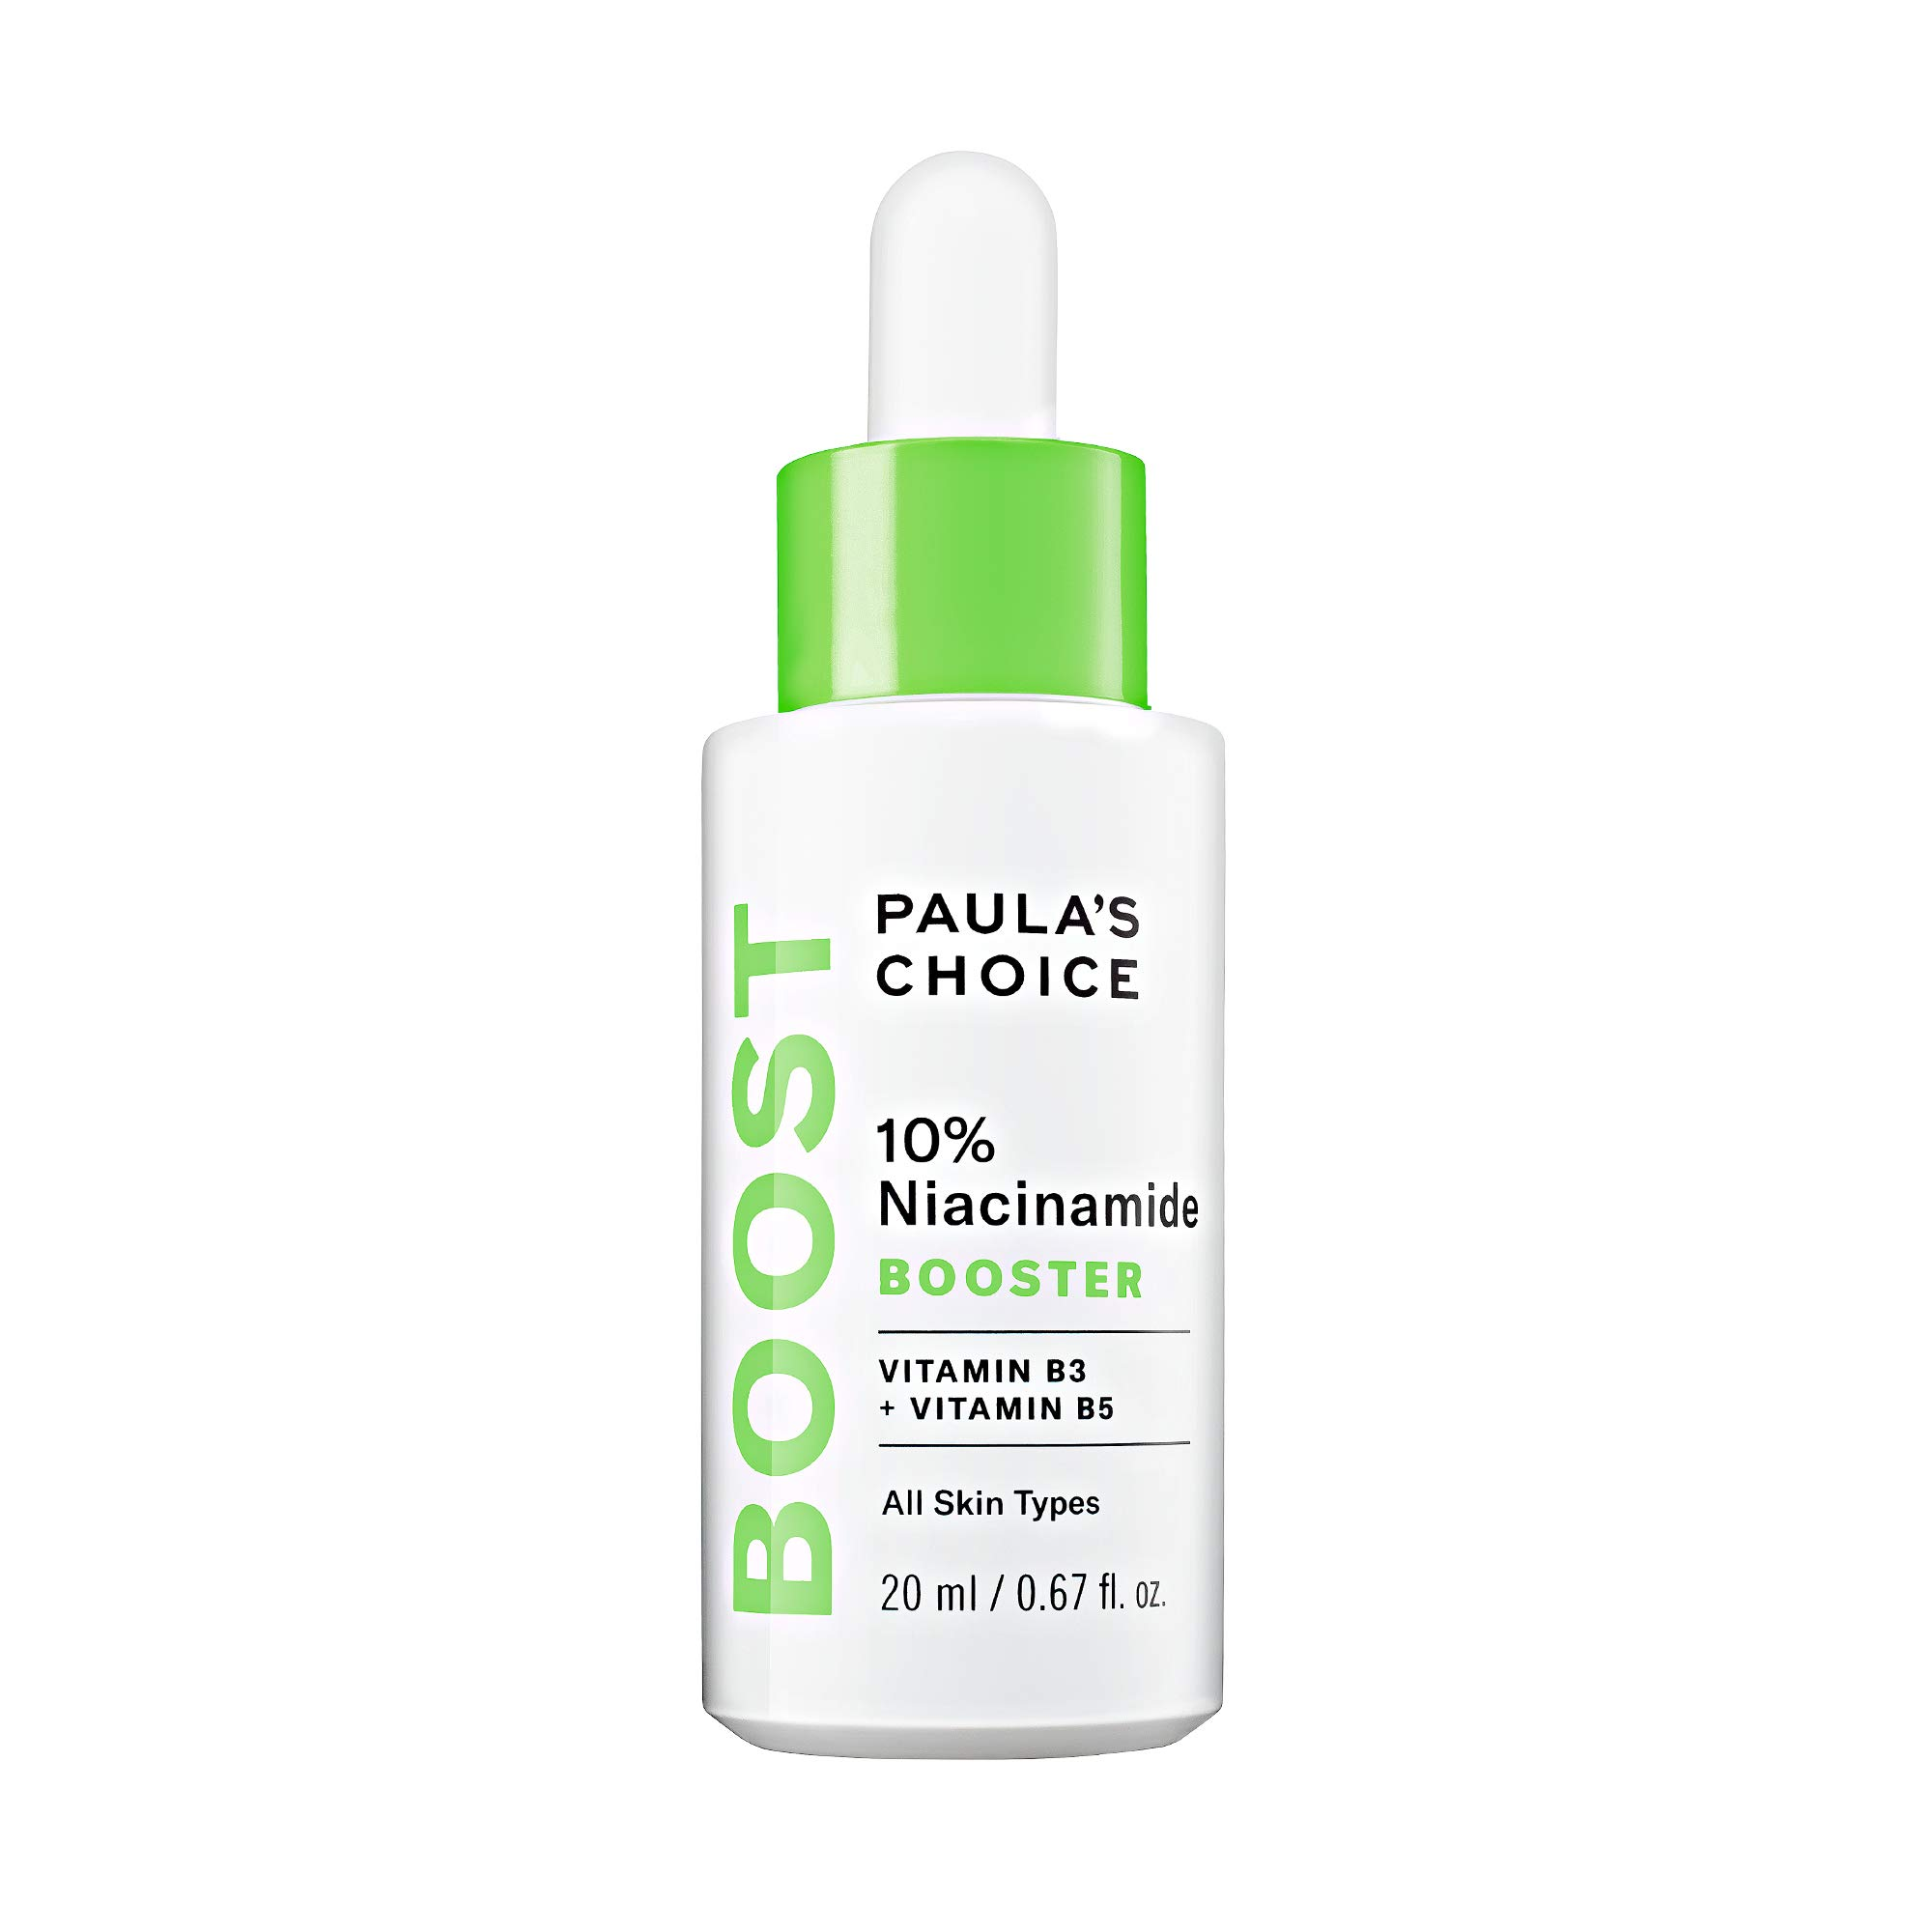 Paula's Choice BOOST 10% Niacinamide Booster, Vitamin B3, Vitamin C & Licorice Extract Serum, Pore Minimizer, 0.67 Ounce